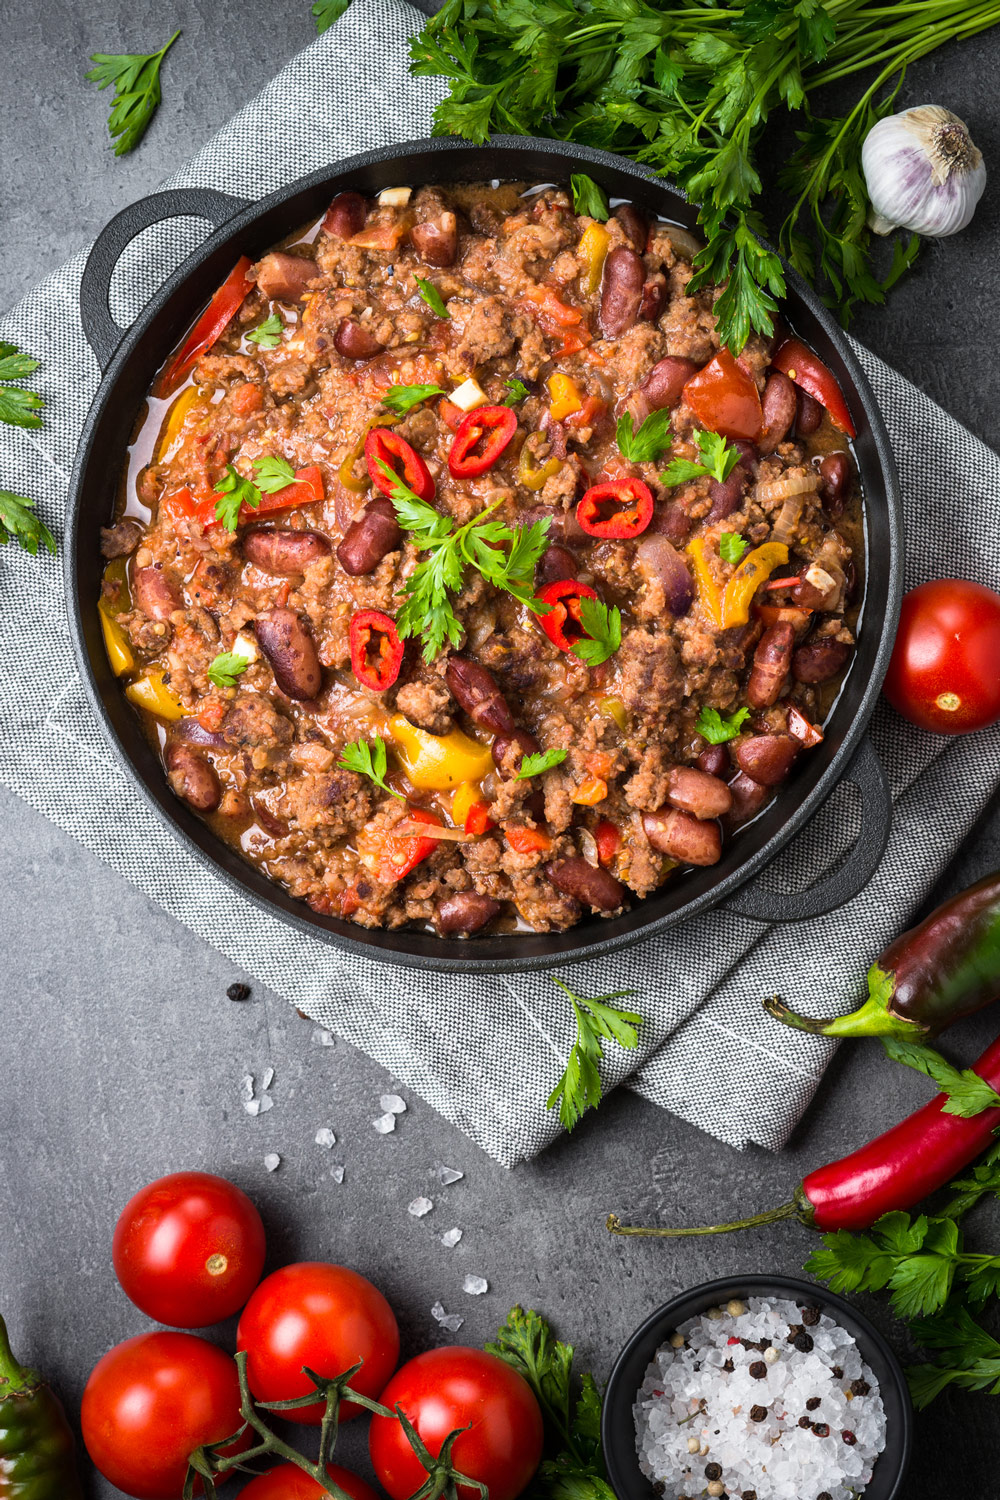 Turkey Chili in a cast iron pot on a grey napkin surrounded by parsley, fresh tomatoes, salt on a kitchen table